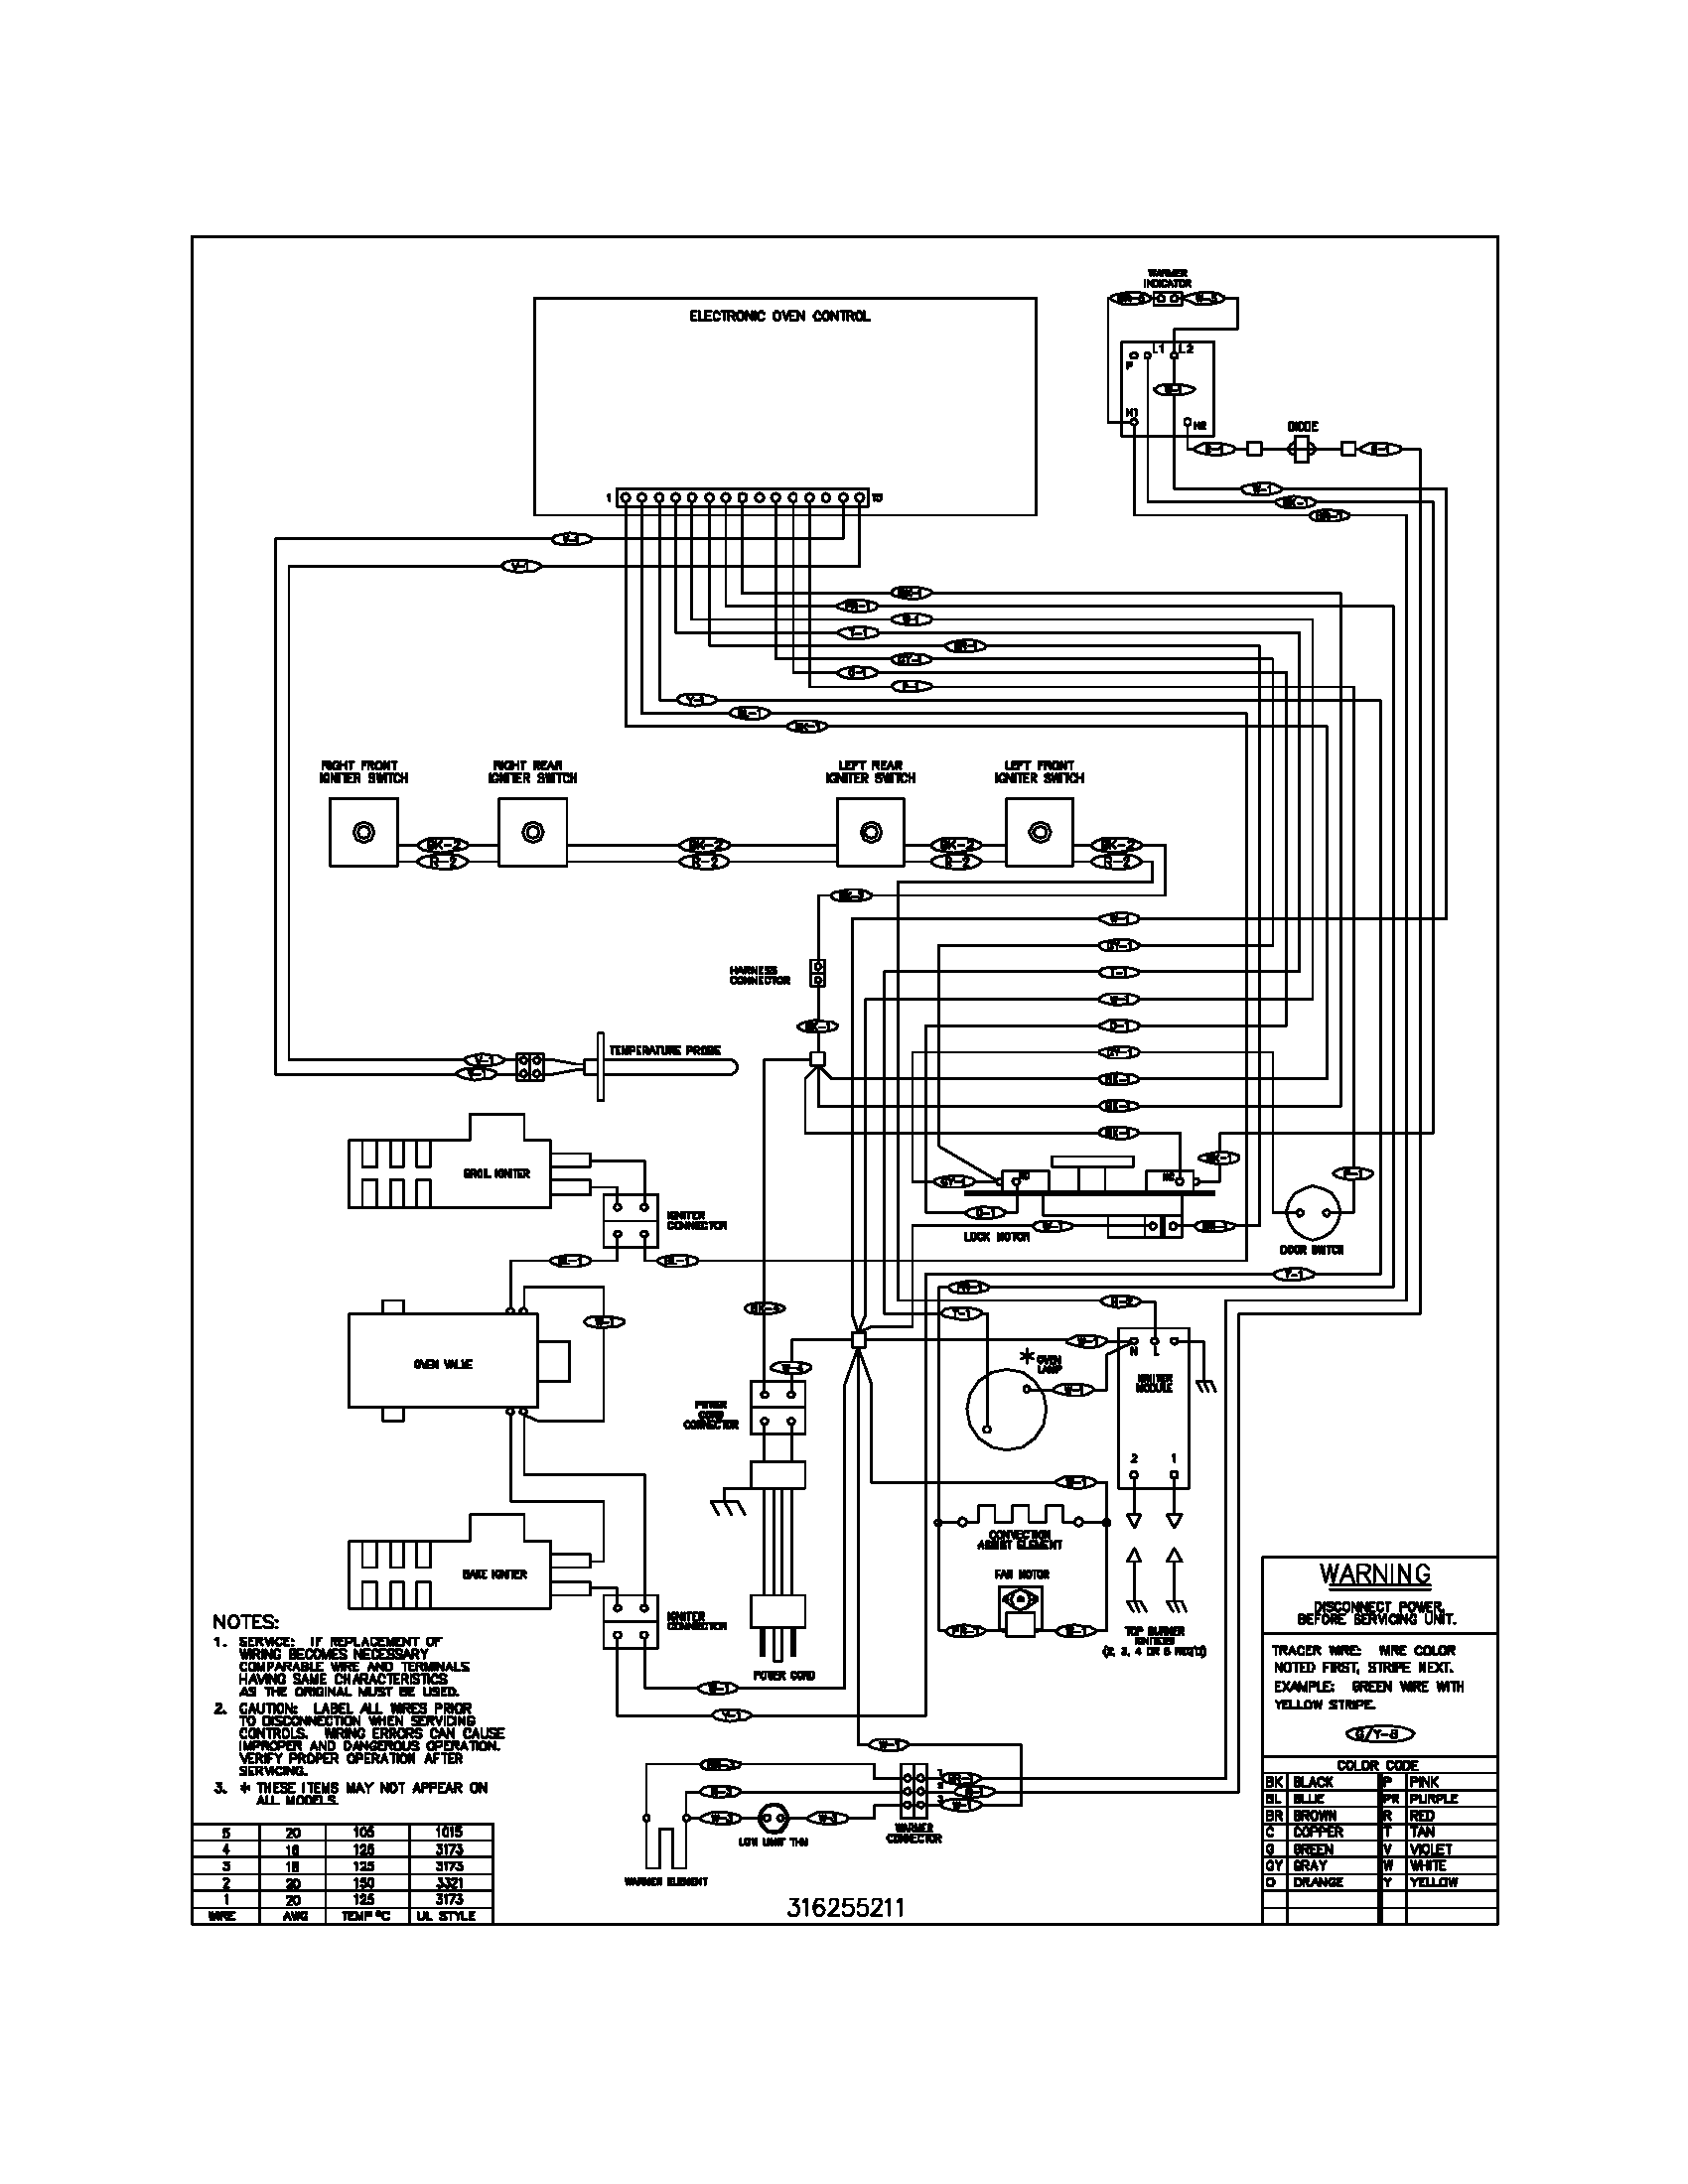 wiring diagram parts whirlpool gas range wiring schematics wiring diagram simonand ge profile microwave wiring diagram at panicattacktreatment.co